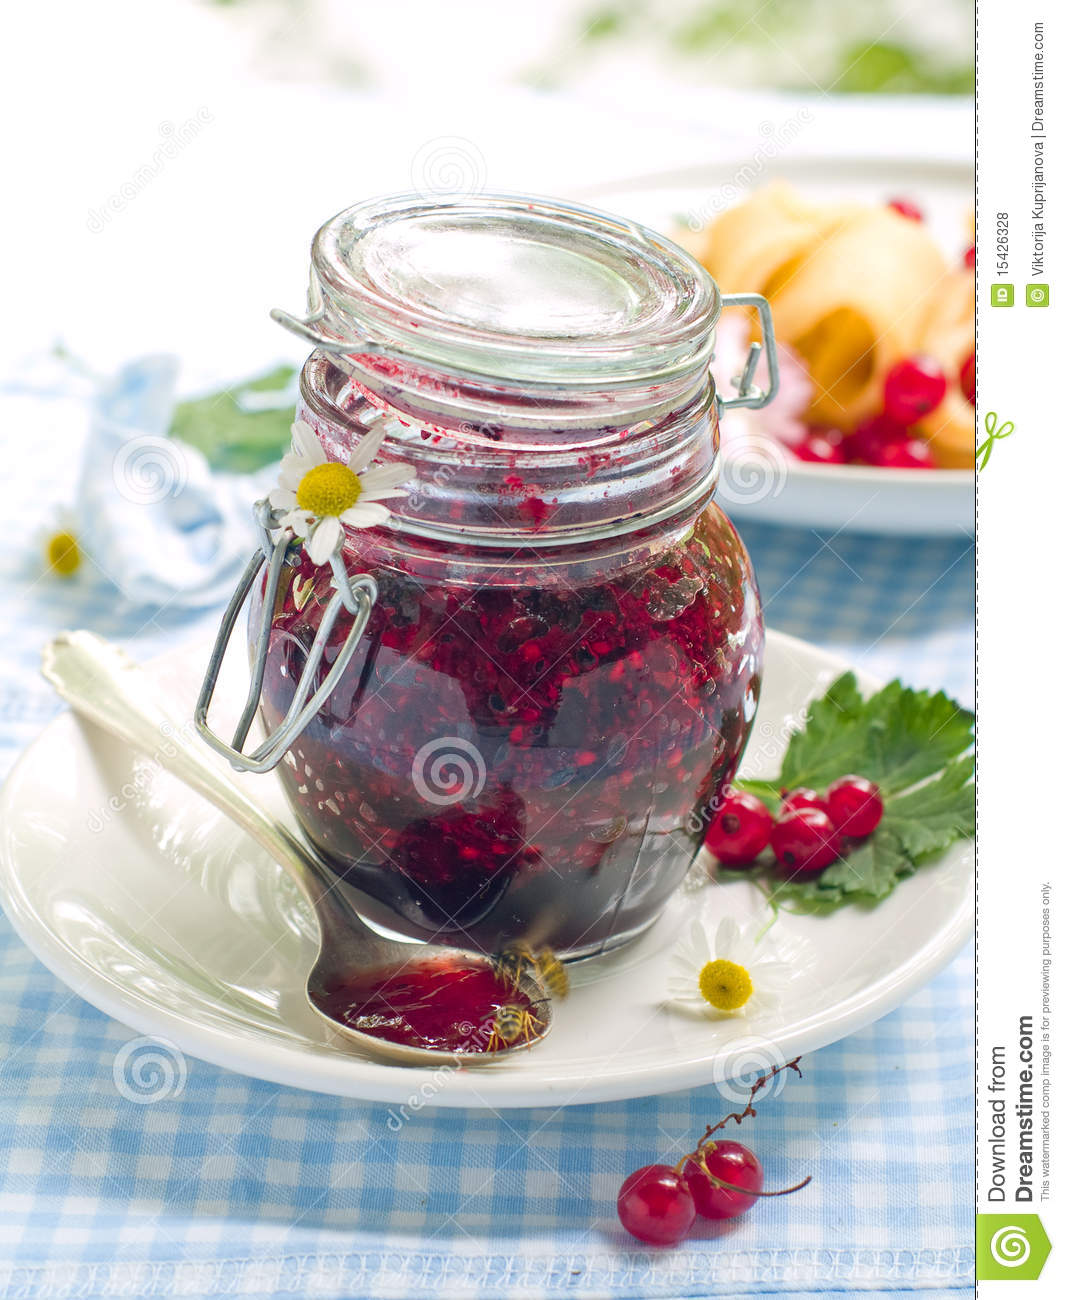 Red currant and black currant jam in jam-jar.